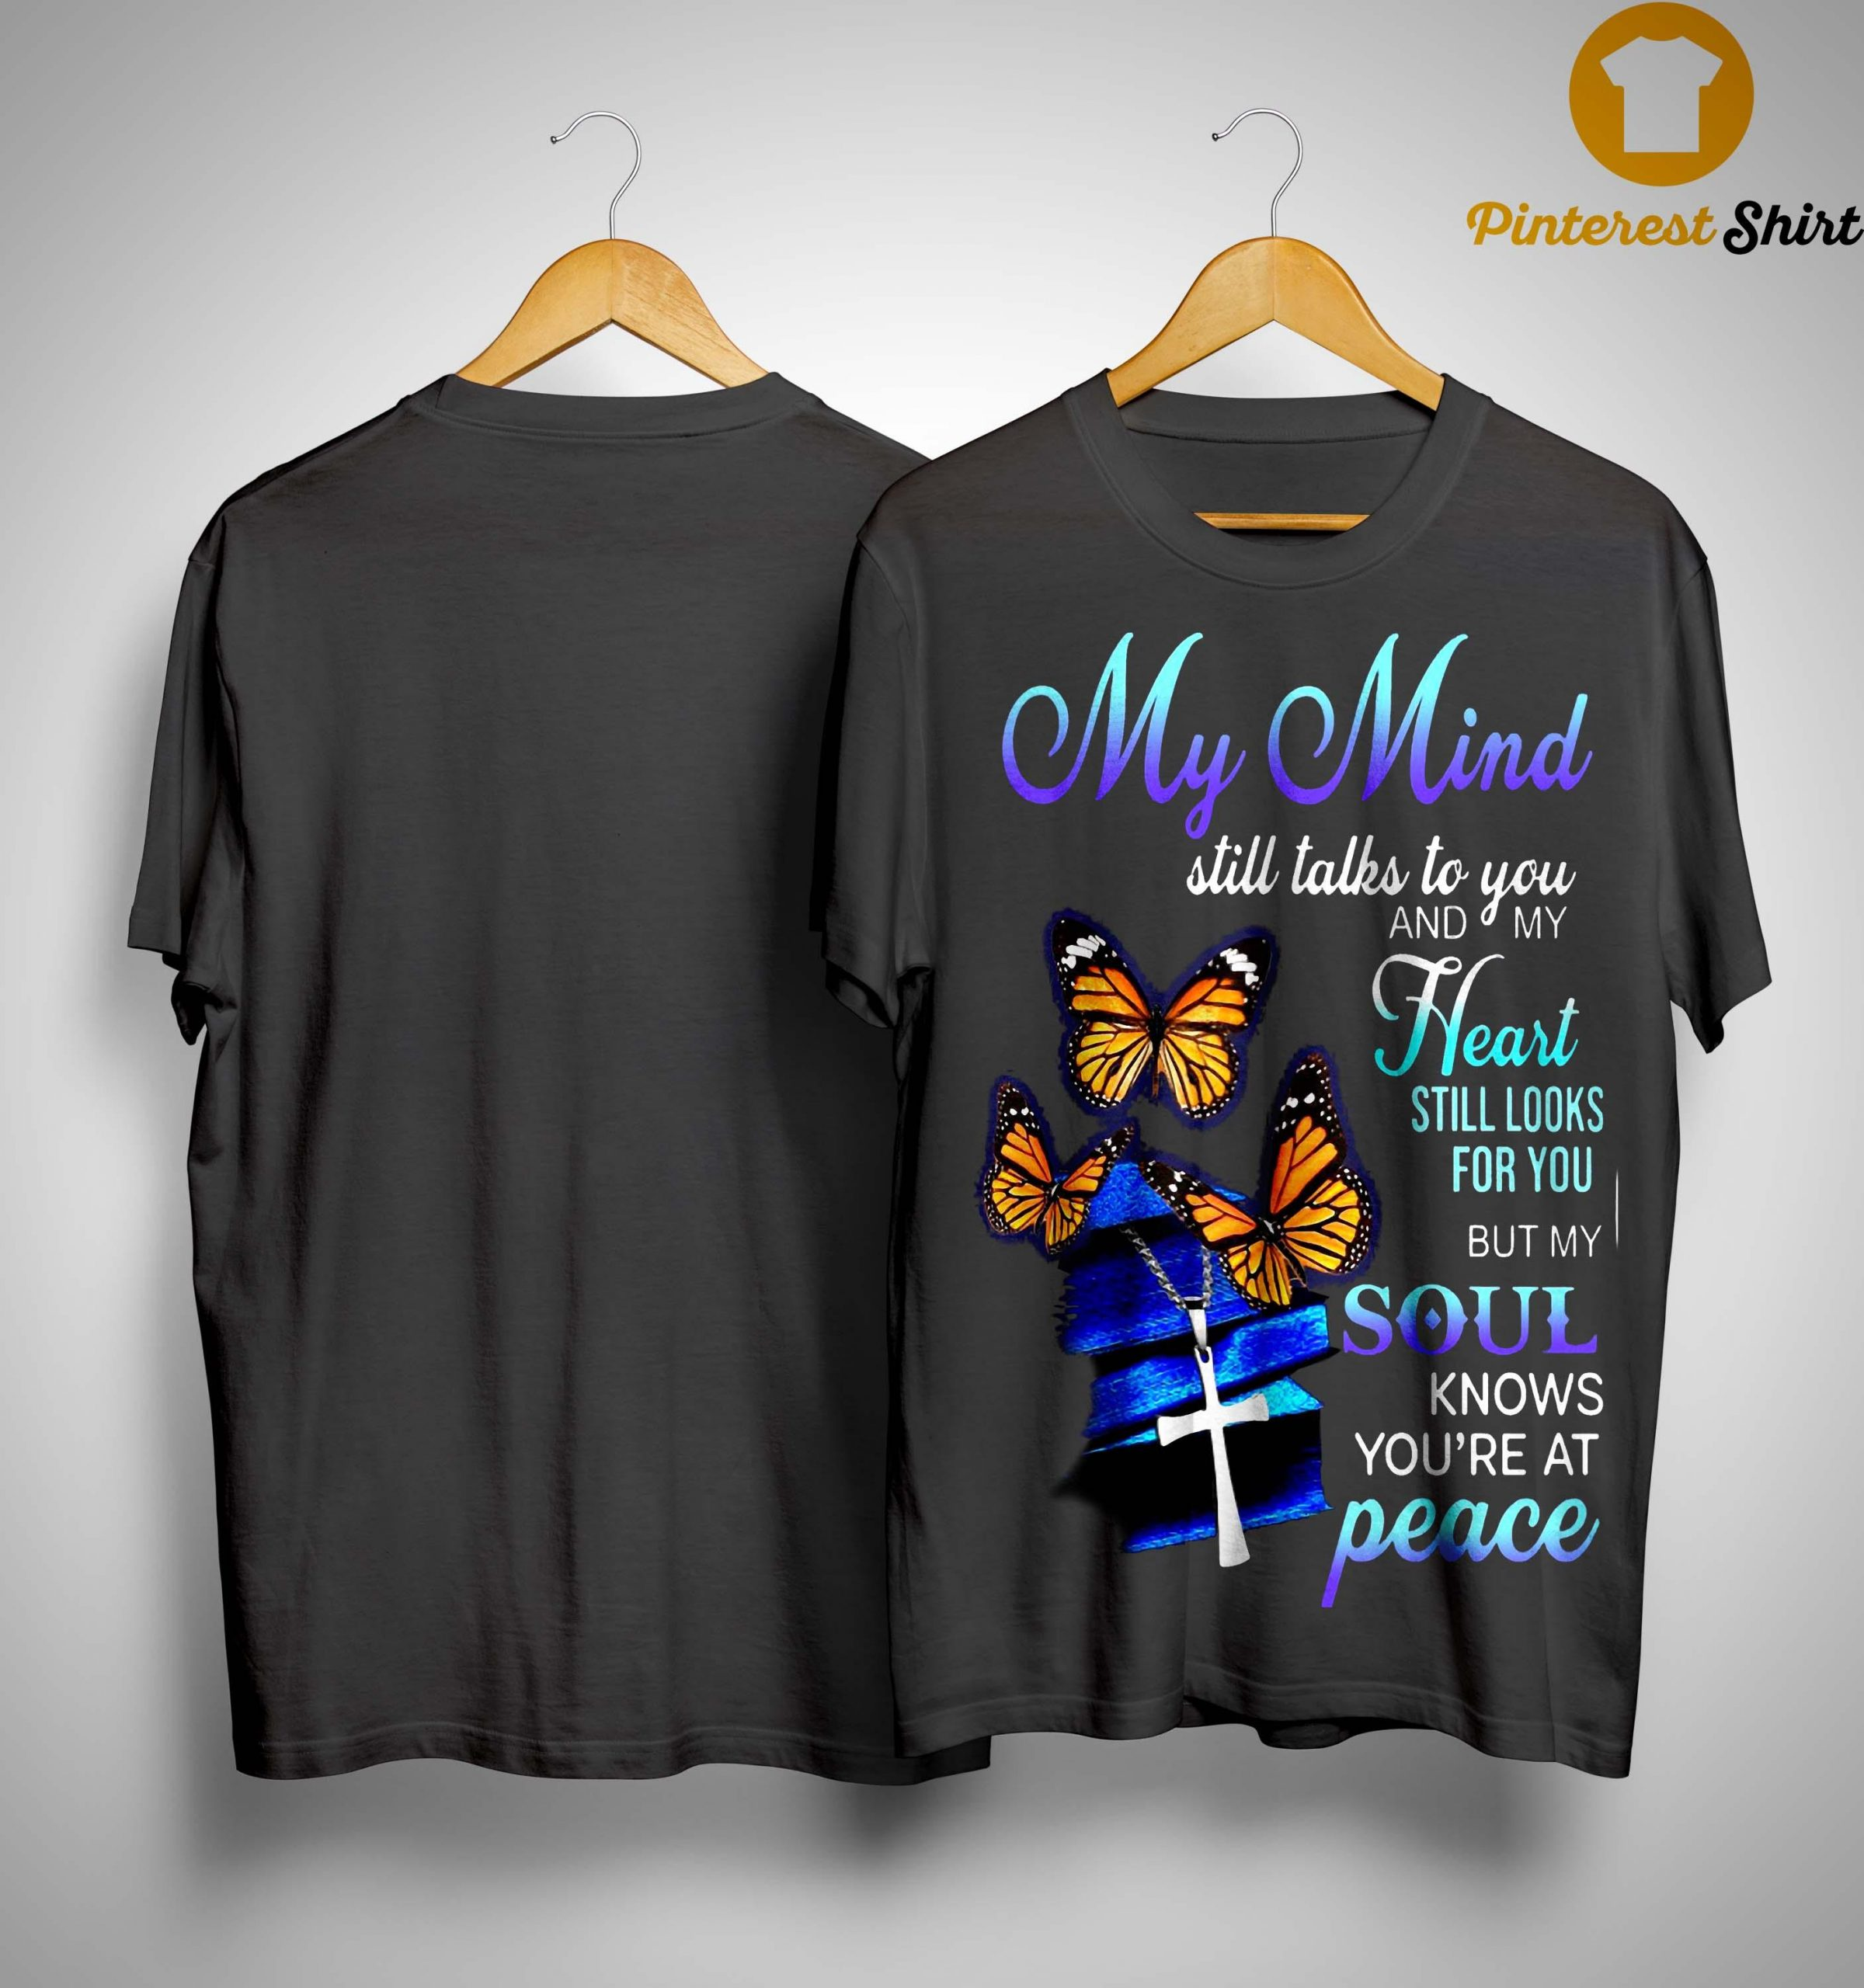 My Mind Still Talks To You And My Heart Still Looks For You Shirt